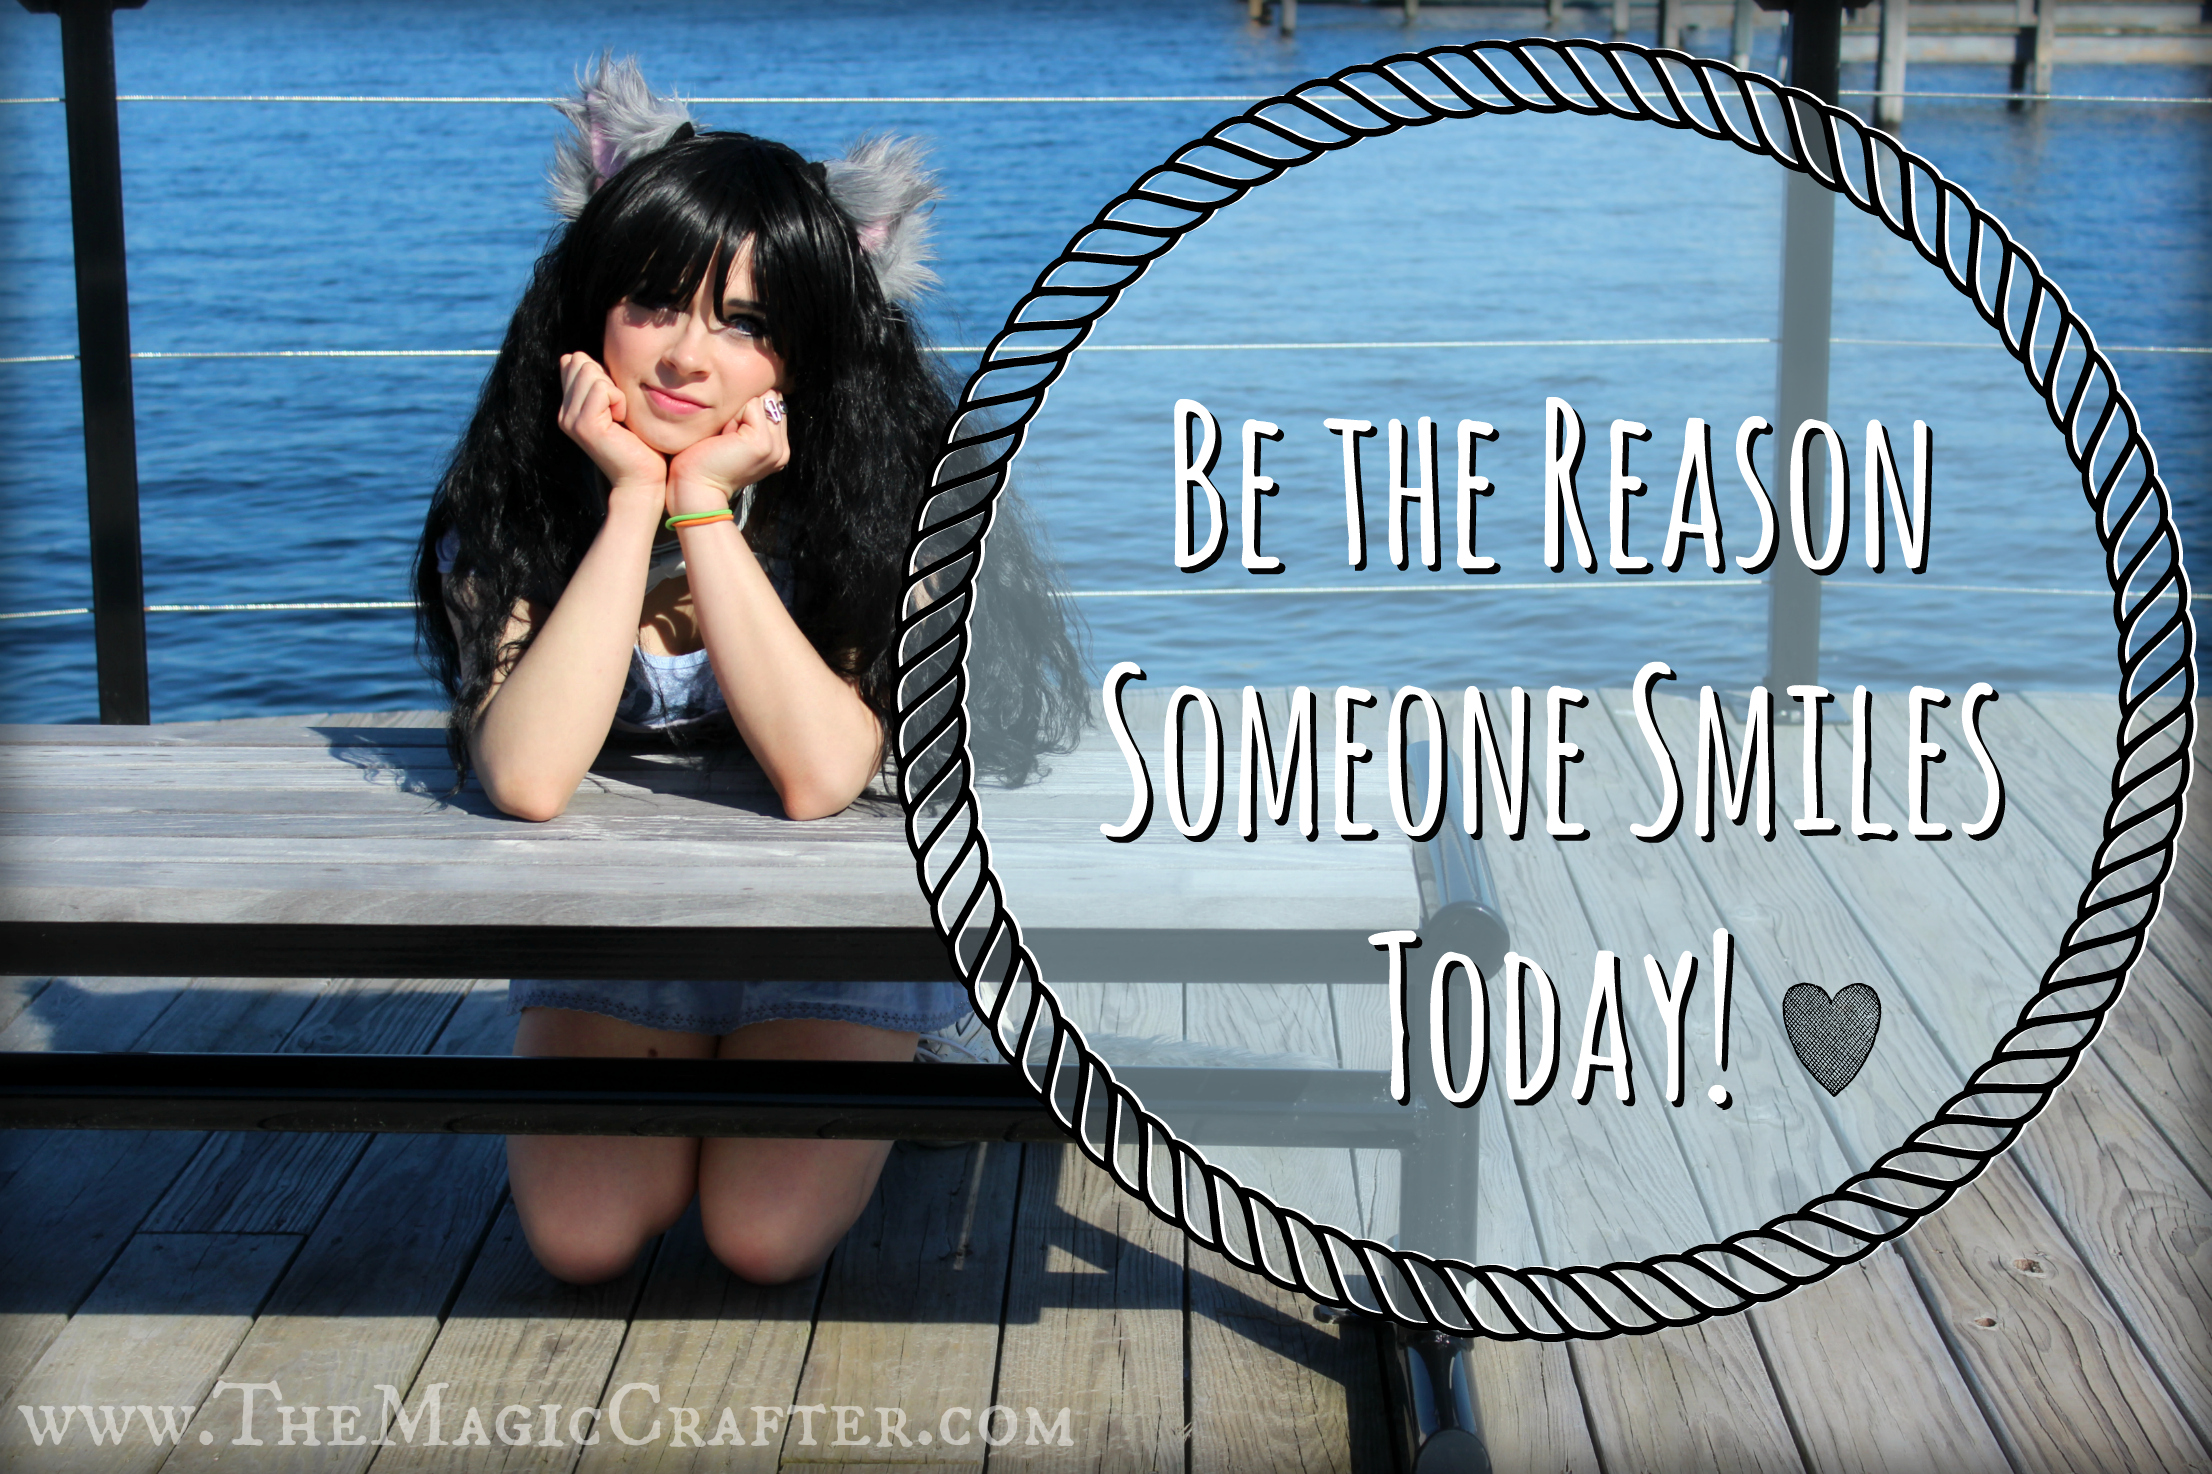 Catgirl smiling- Be the reason someone smiles today (quote).